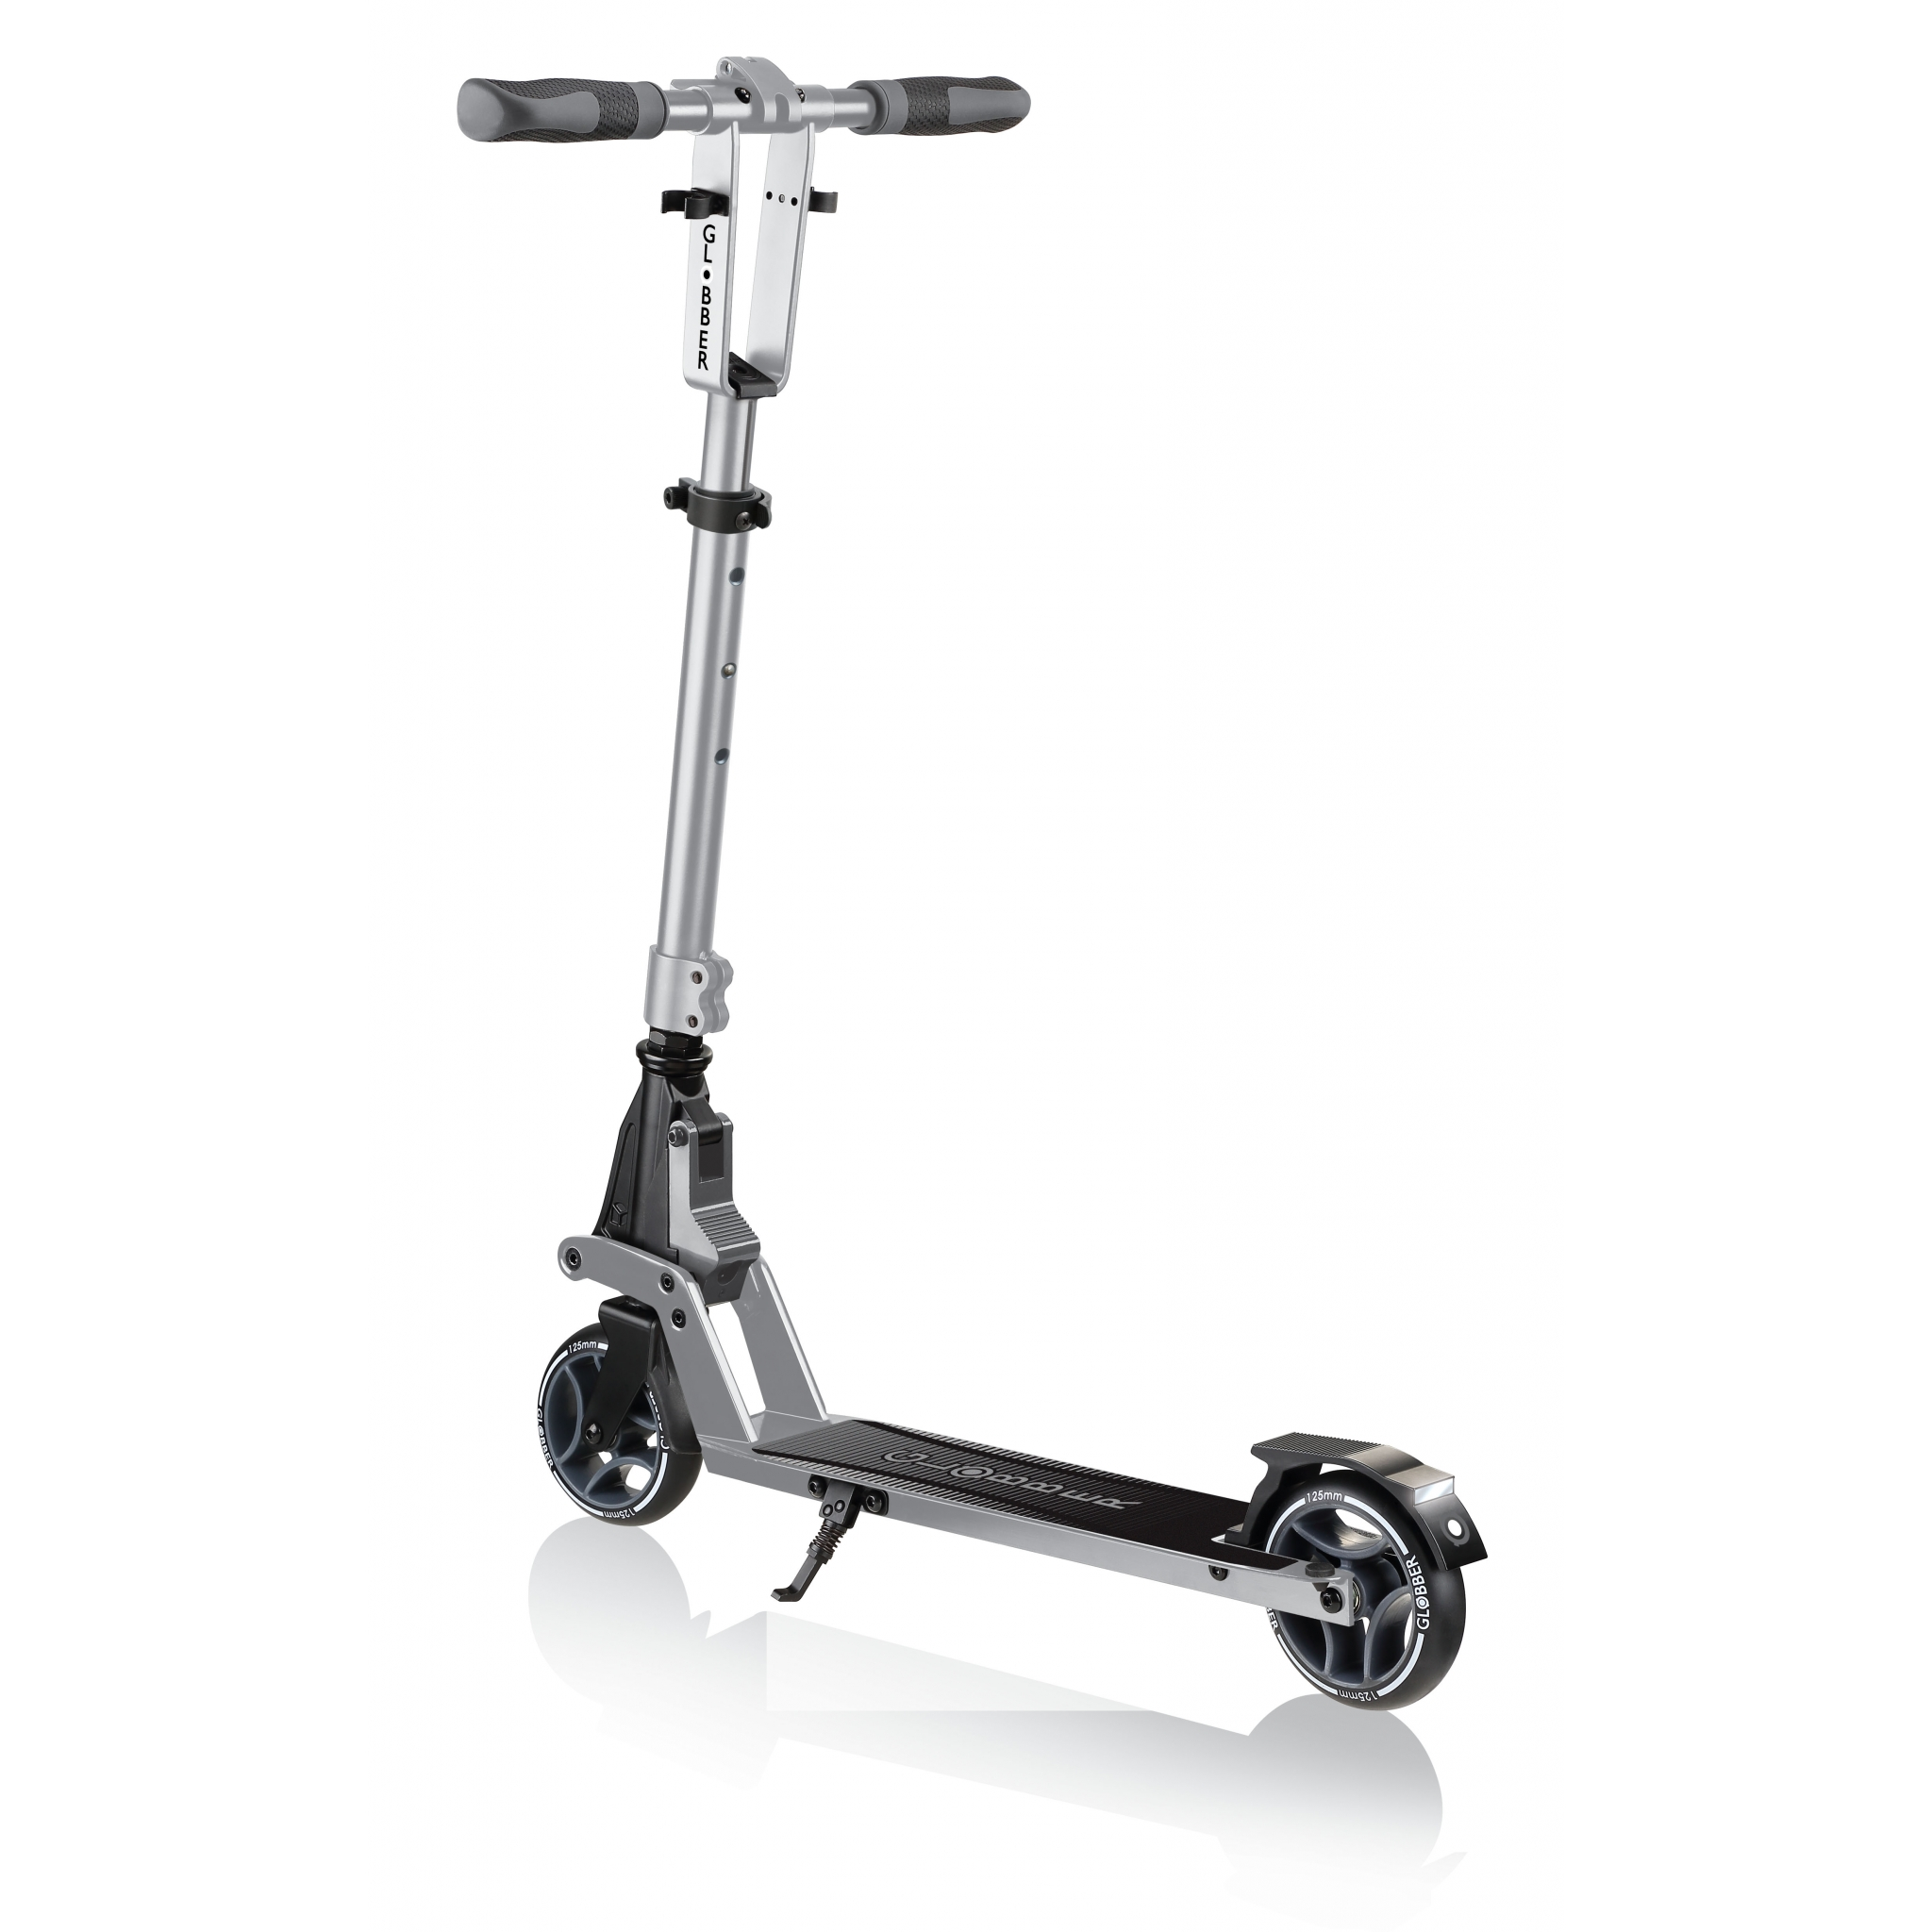 ONE-K-125-2-wheel-foldable-scooter-with-3-height-adjustable-T-bar_silver 5